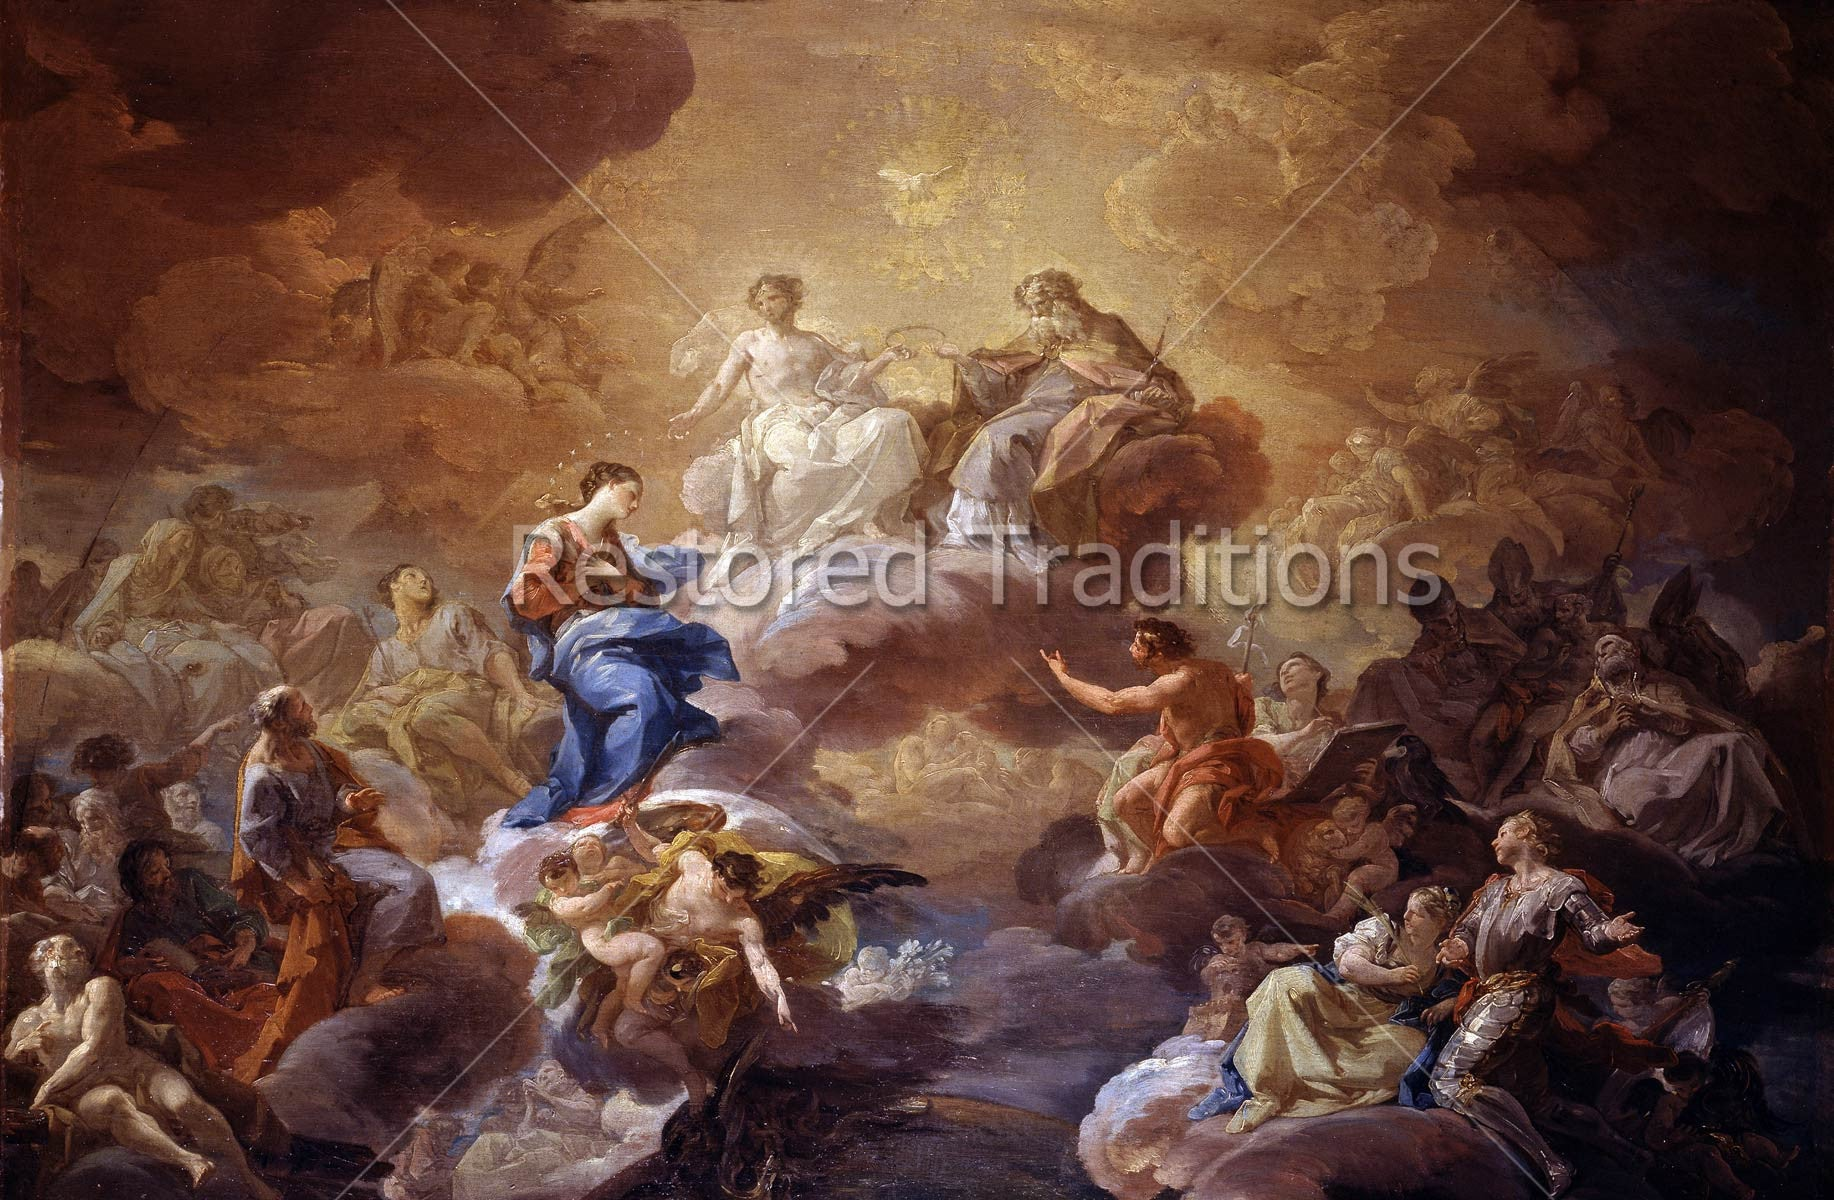 Image File—Holy Trinity Honors Virgin Mary in Heaven, Artist Giaquinto